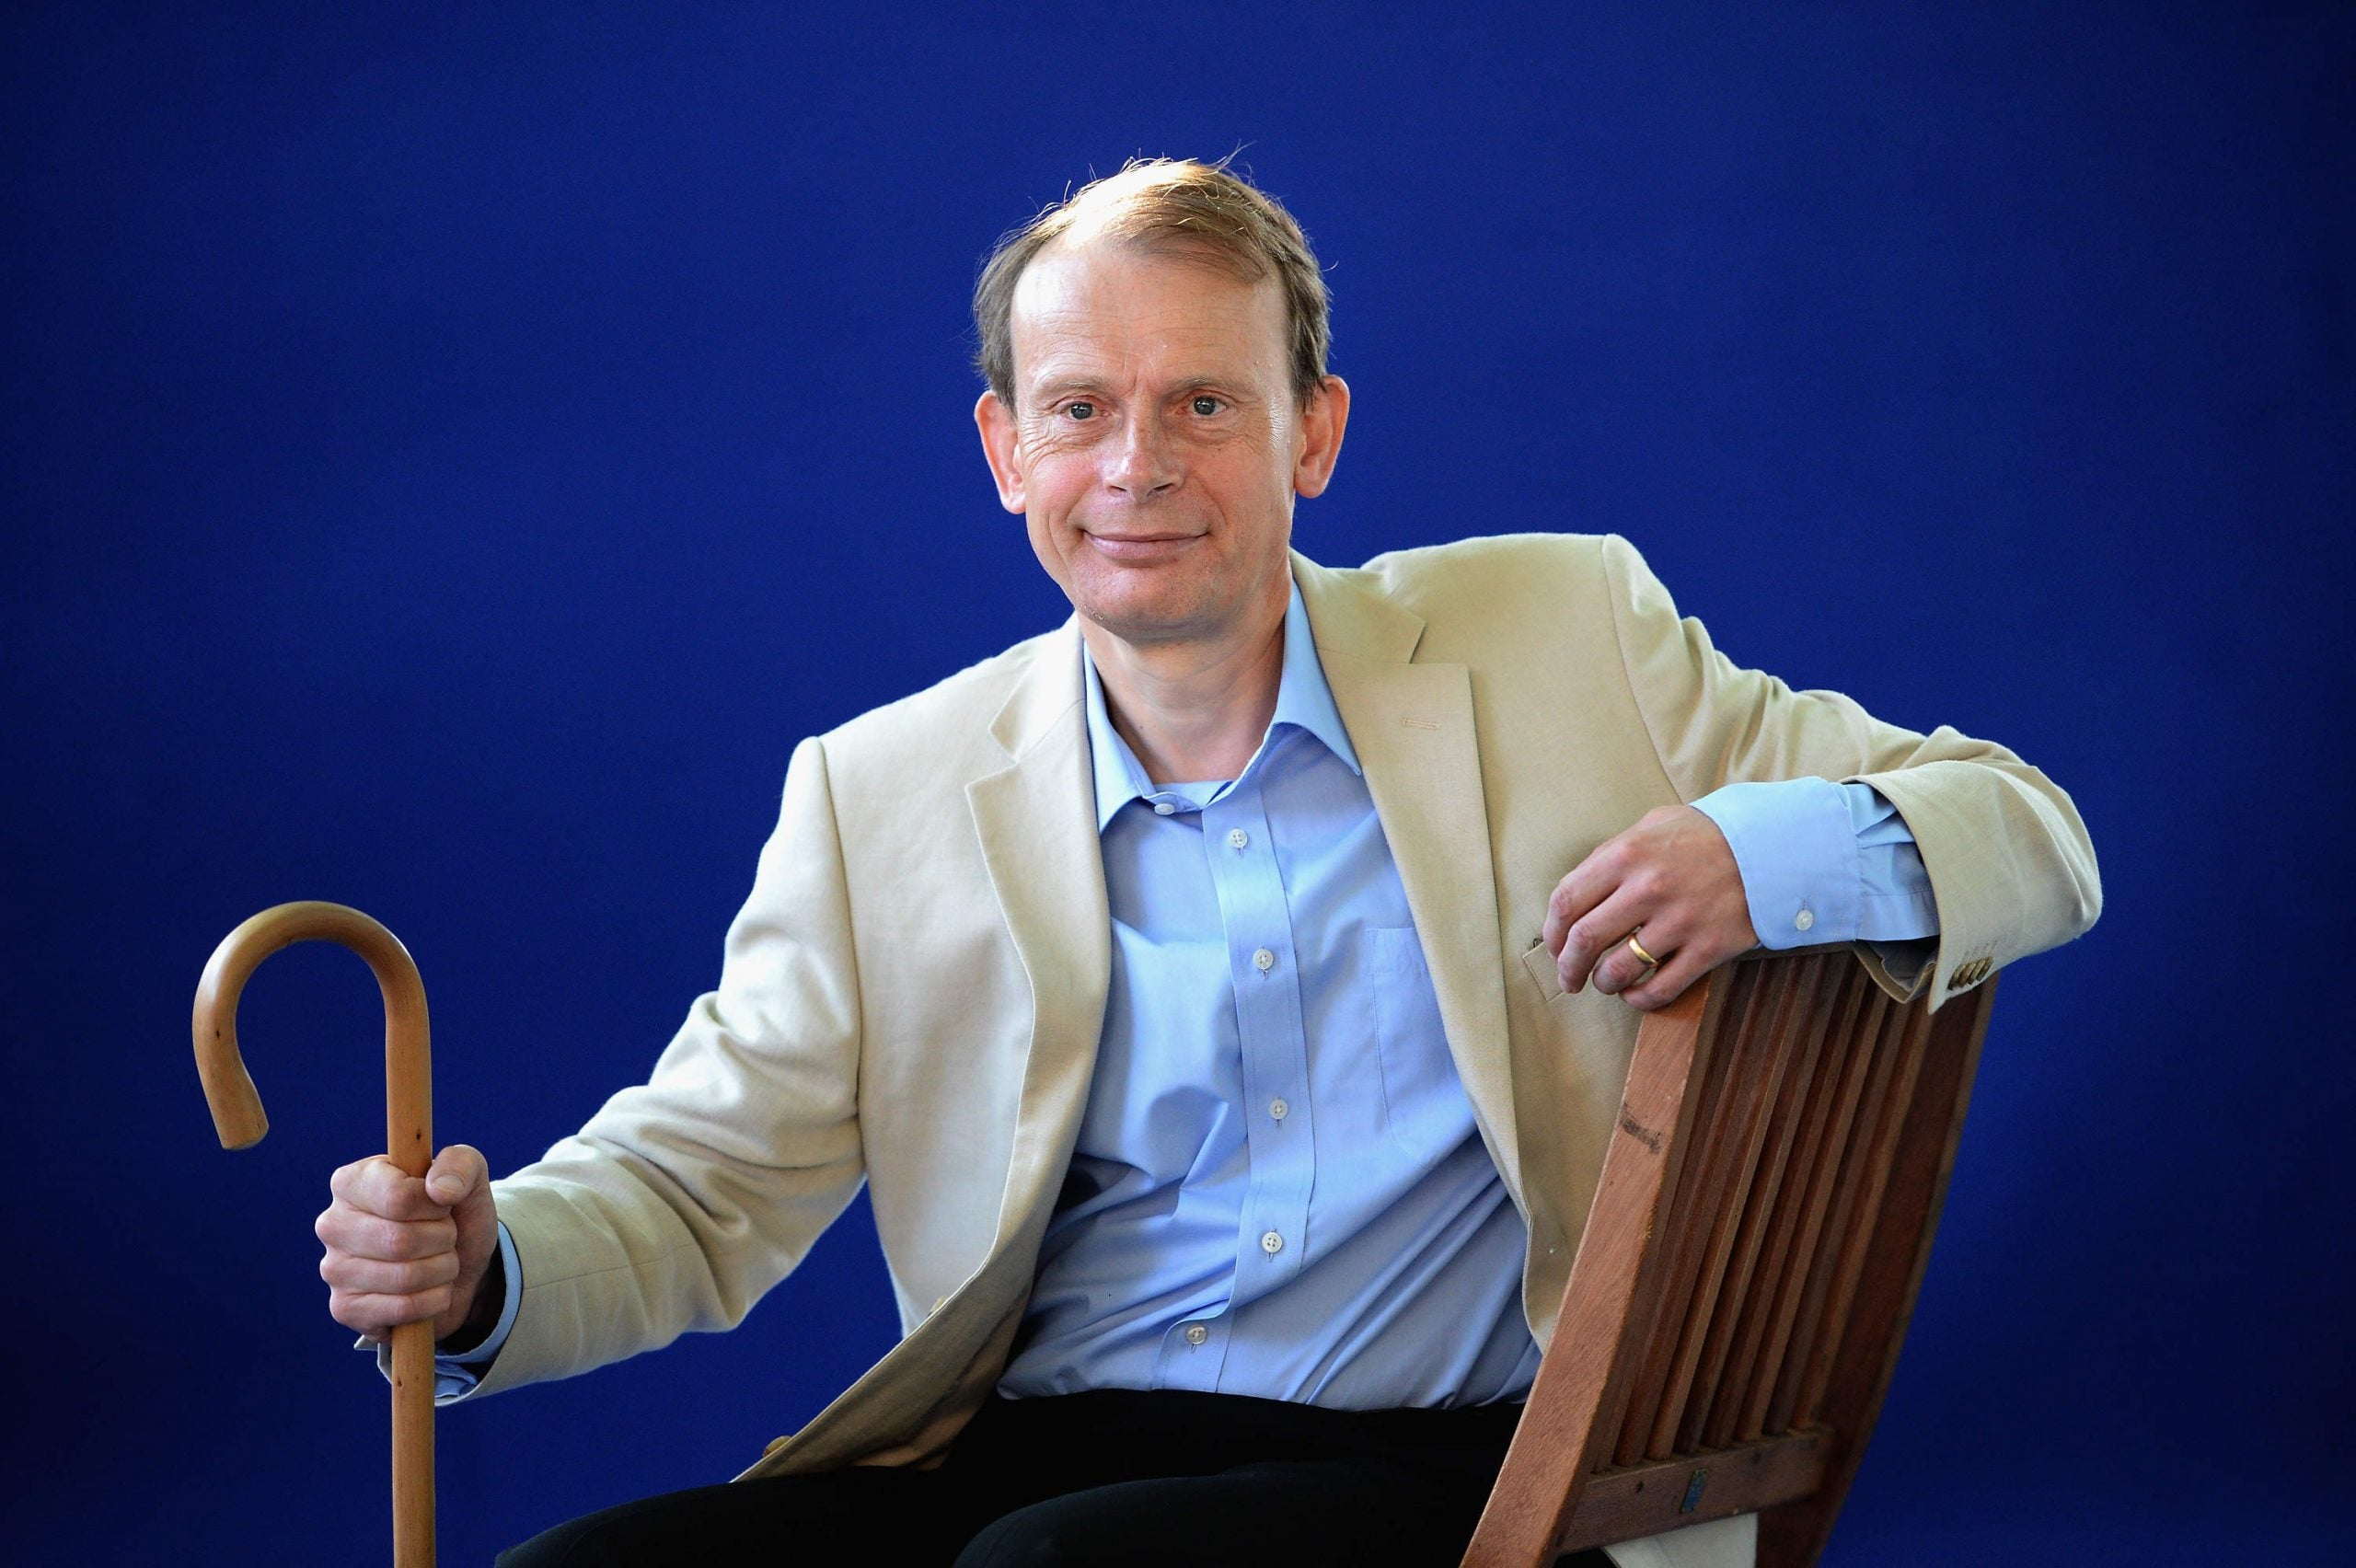 Despite new challengers, Andrew Marr is still the king of the Sunday-morning politics skirmish